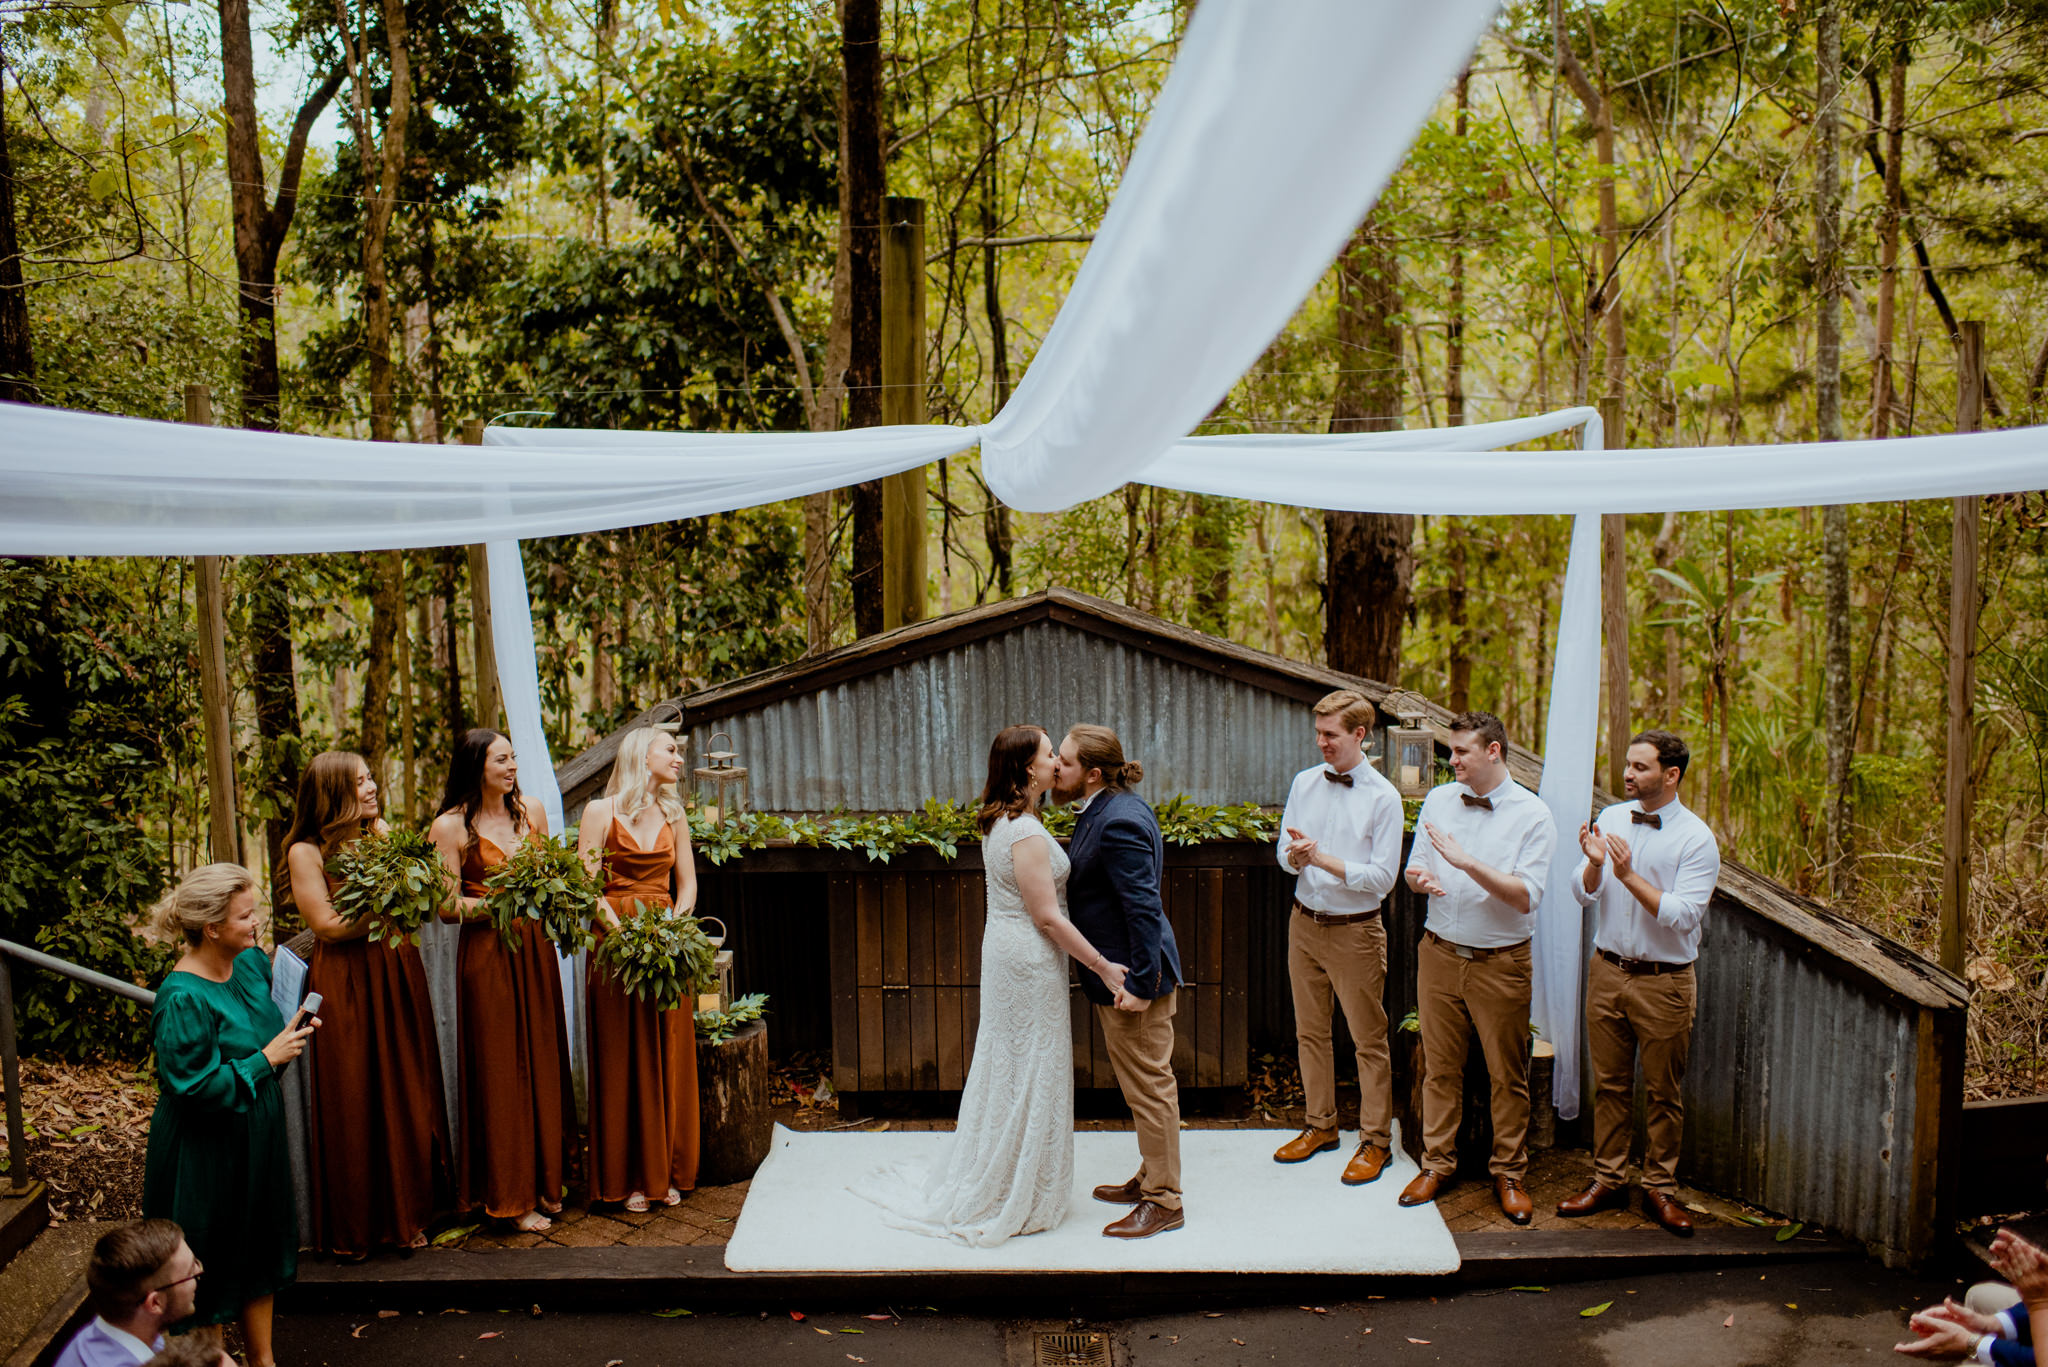 A bride and groom kiss at the end of their wedding ceremony in an Australian bush forest